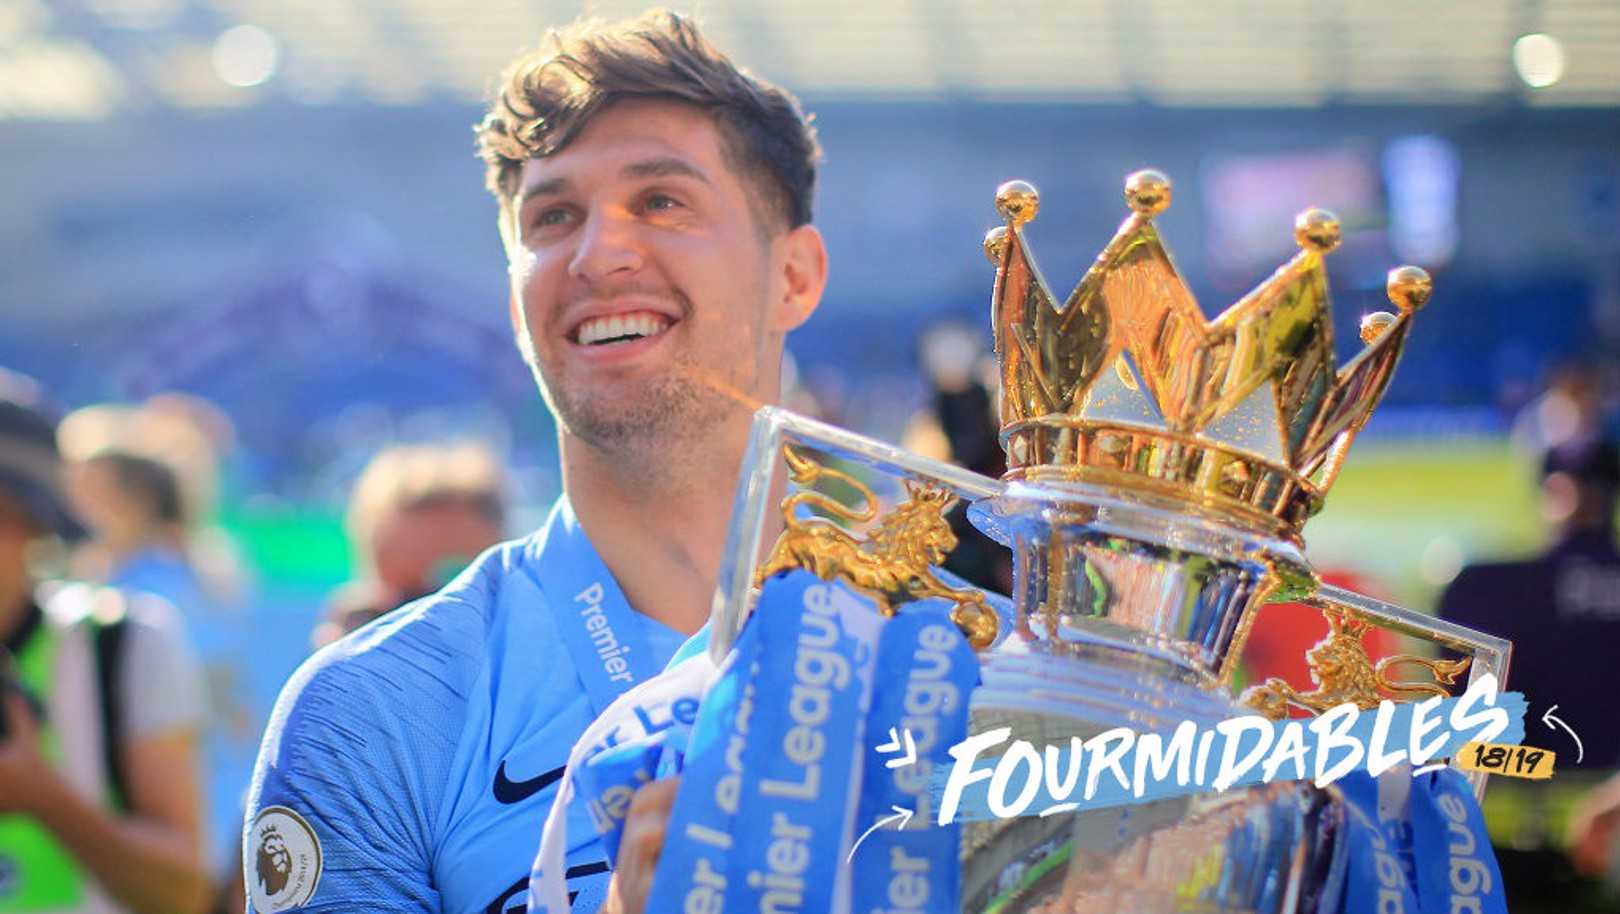 Fourmidables in focus: John Stones